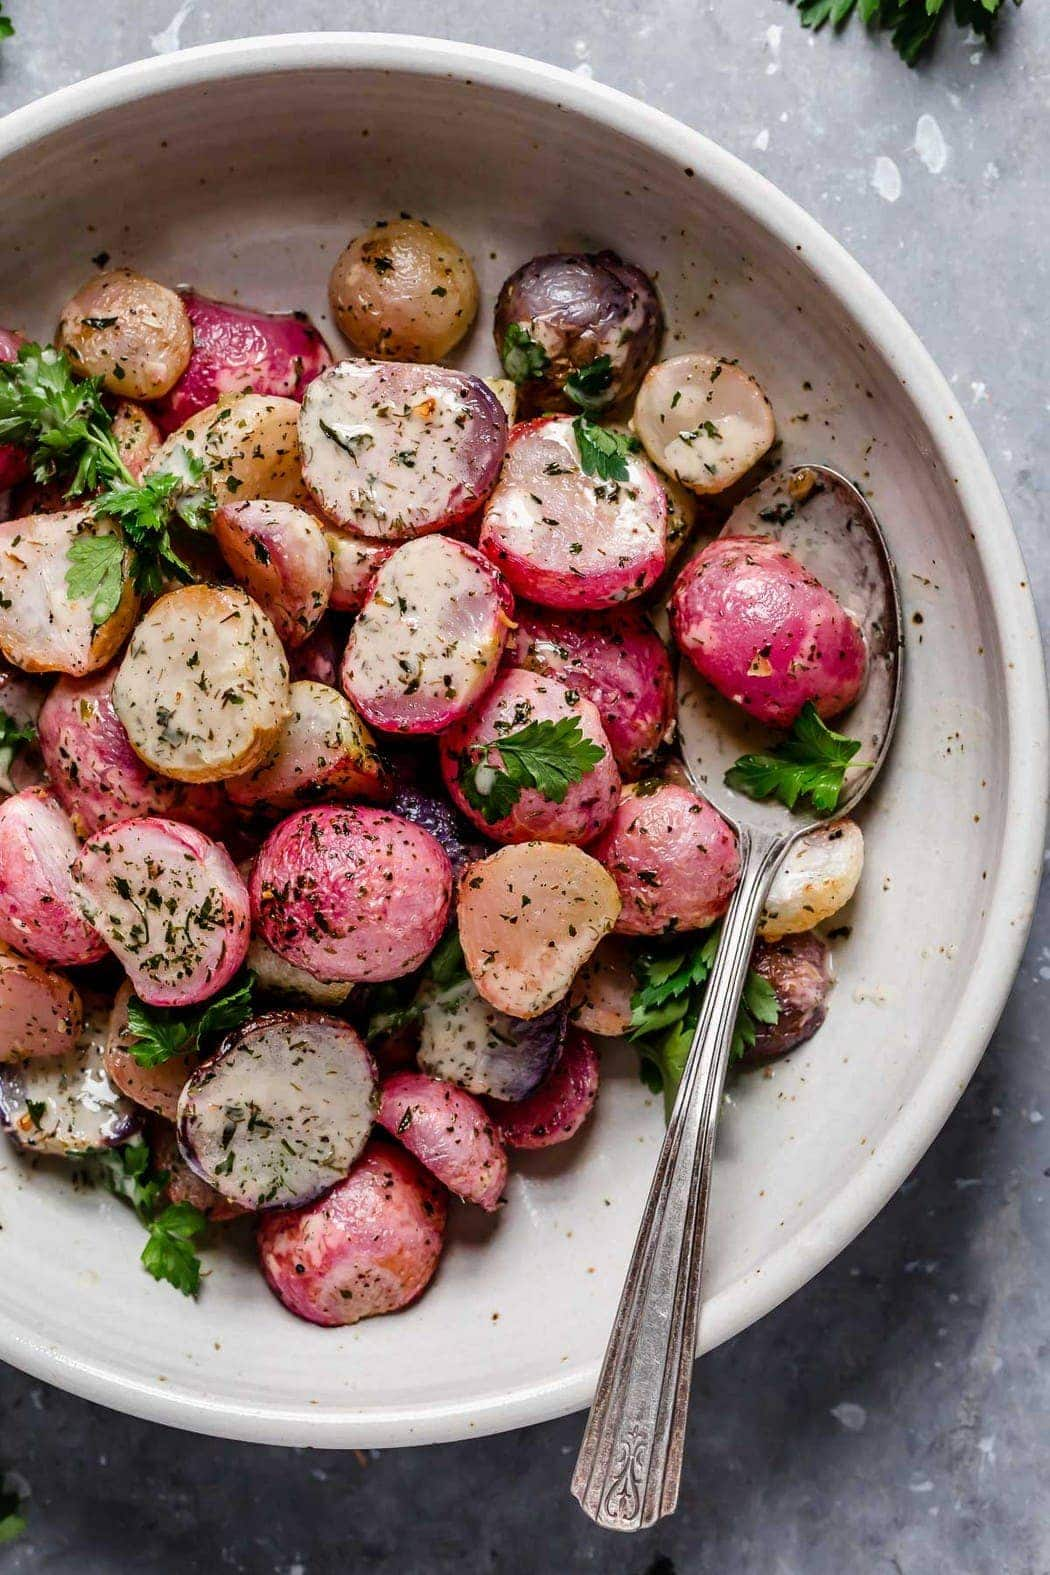 Garlic Roasted Radishes in a cream serving bowl topped with fresh herbs and homemade ranch dressing.